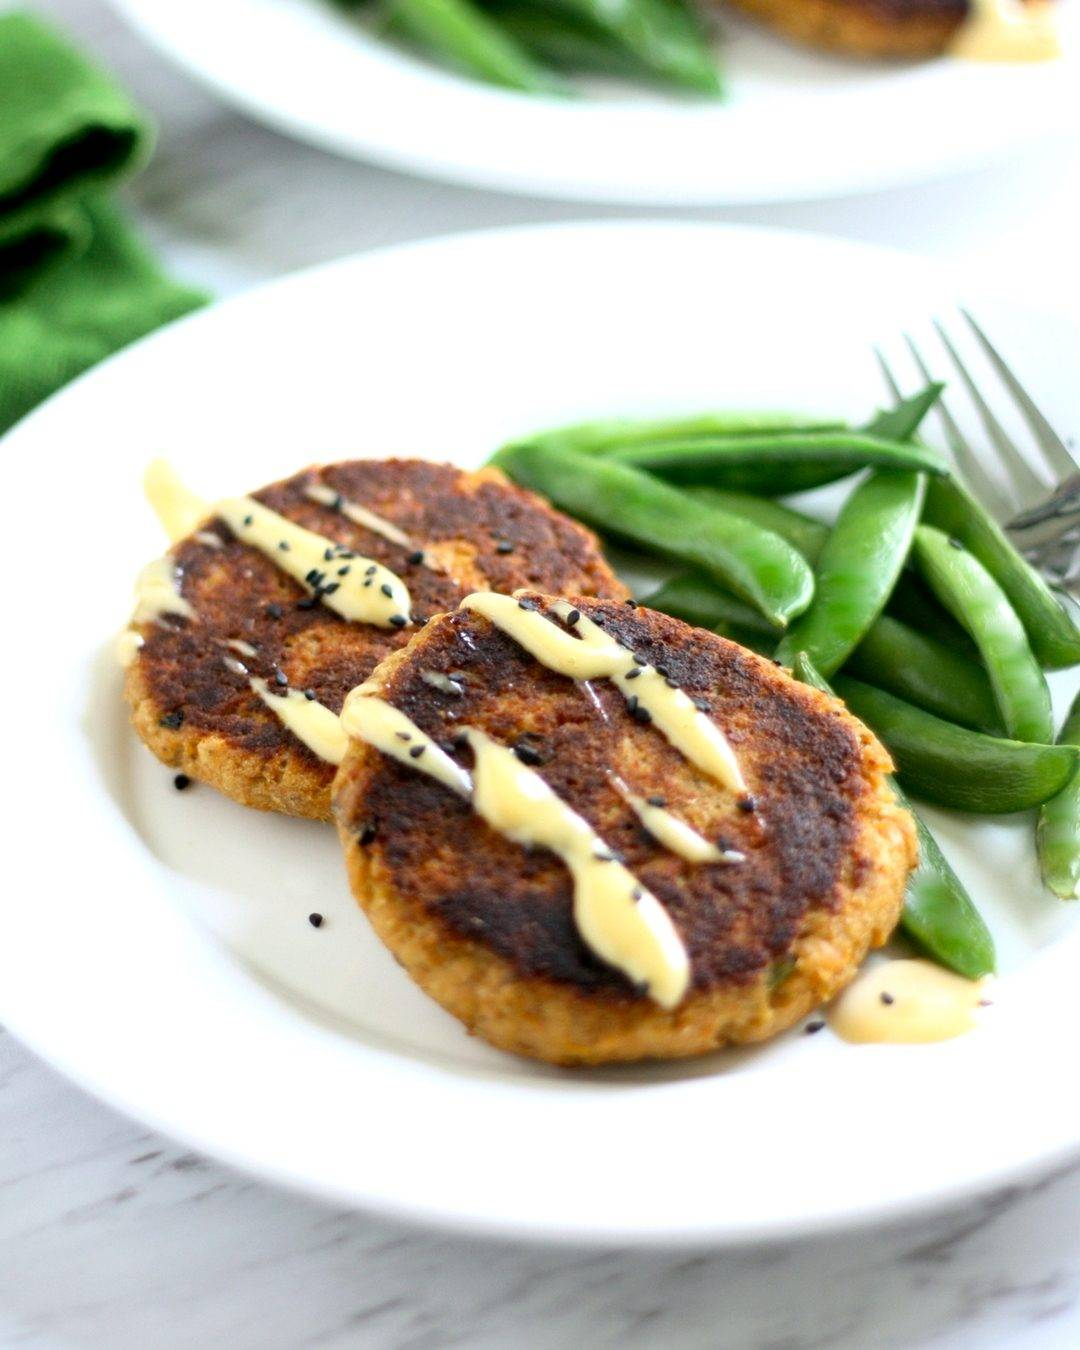 Plate with Salmon Patties and Steamed Sugar Snap Peas